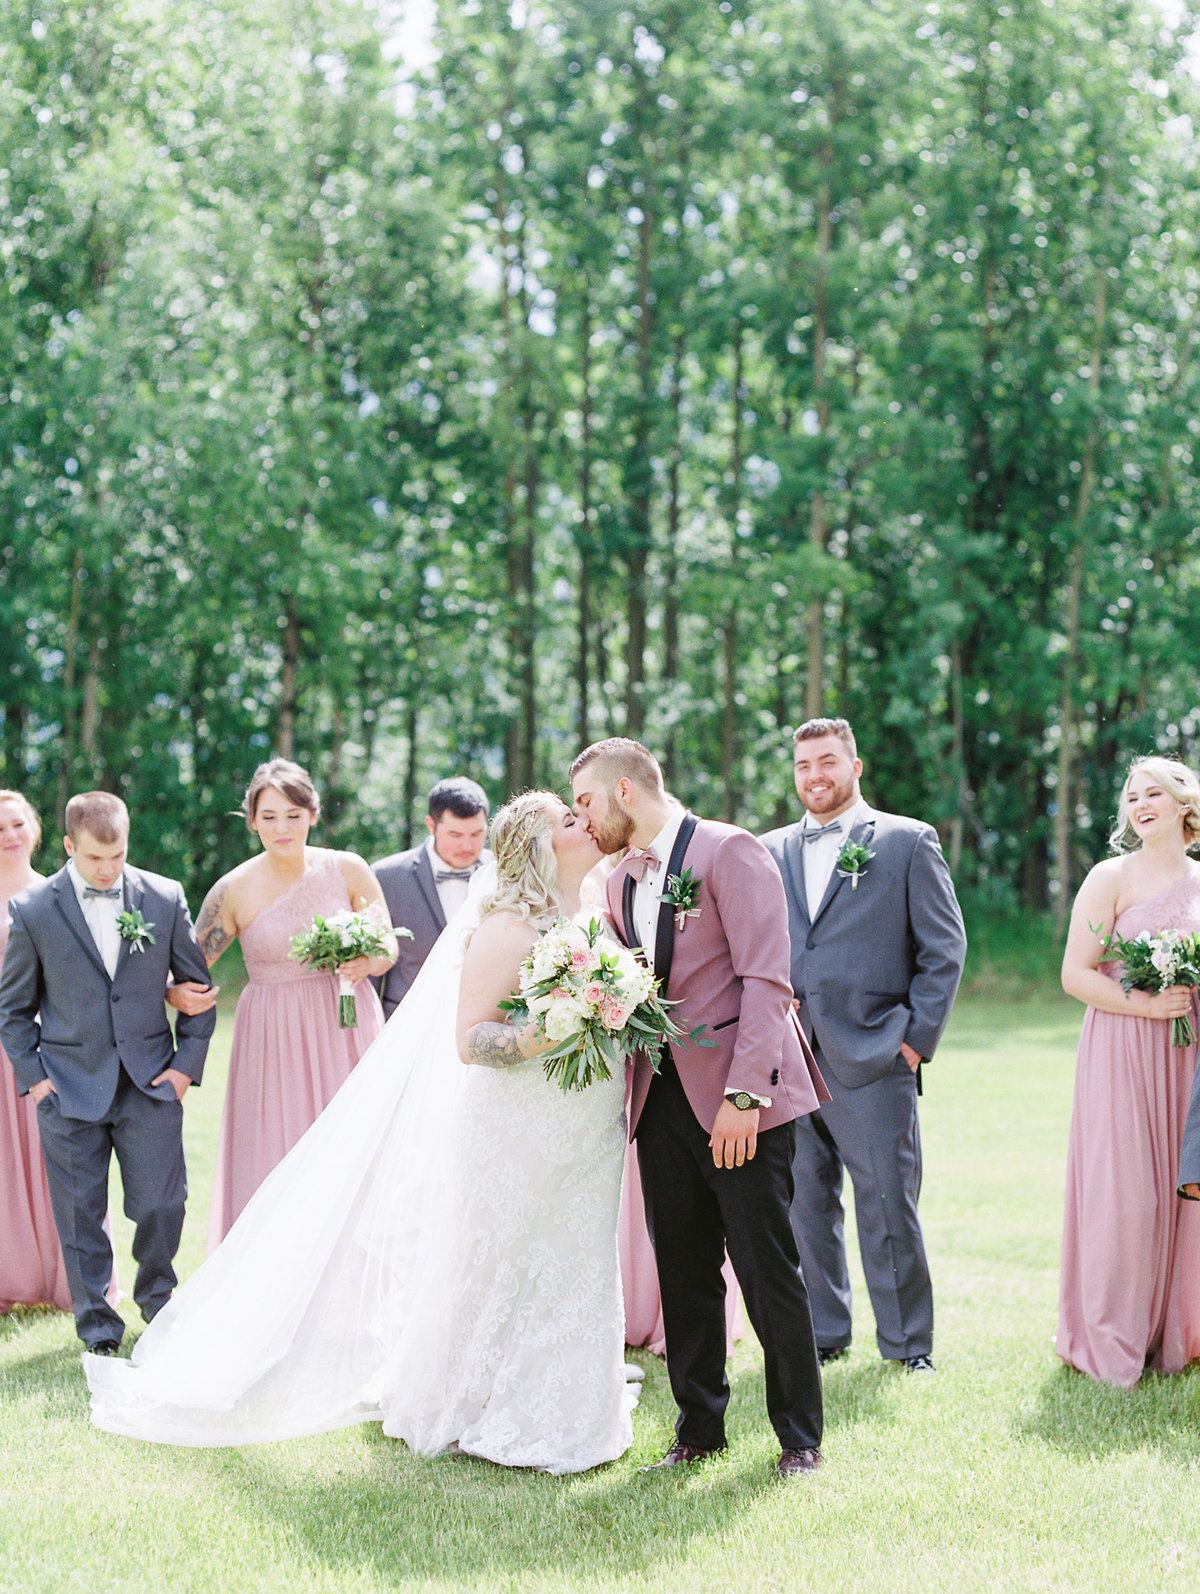 Snow Peak Farm wedding photographer